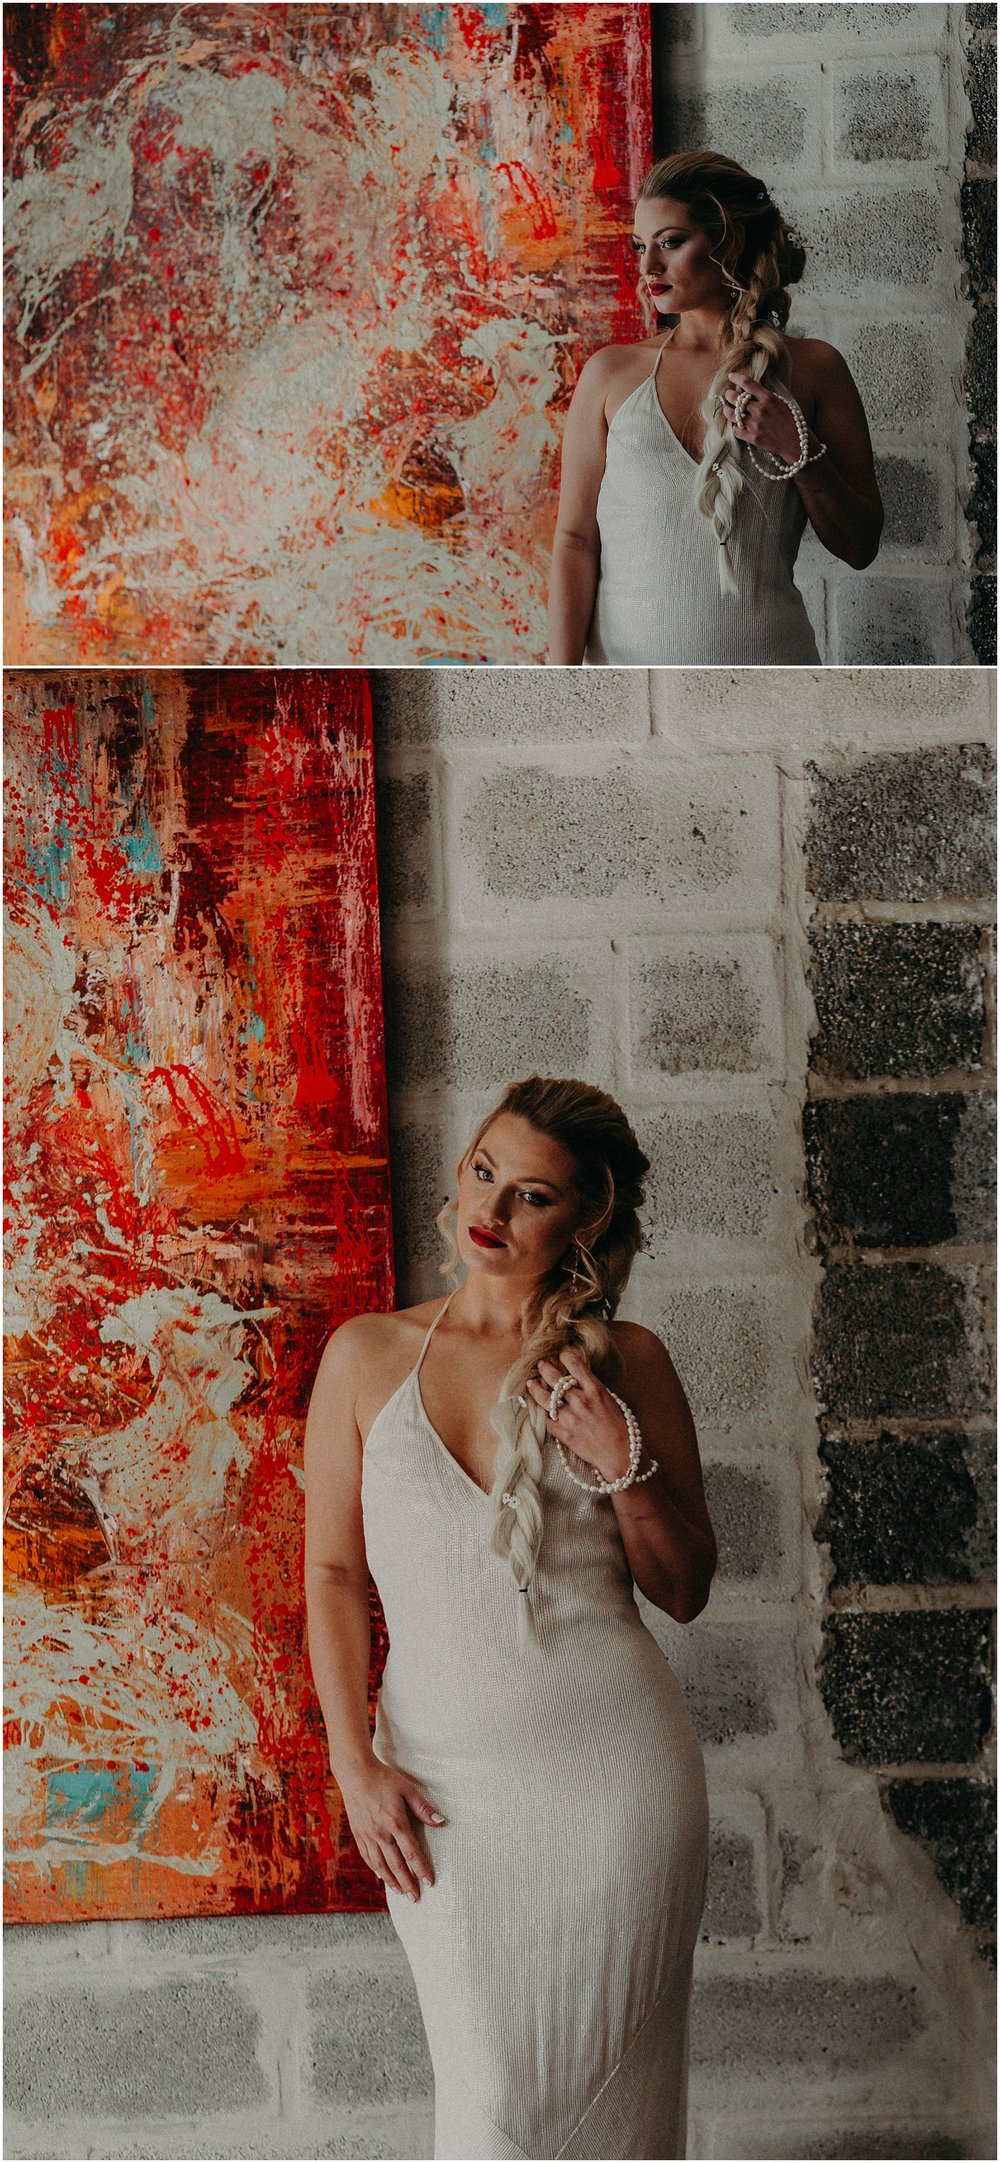 styled shoot-bridal portraits-portraits-bride-rock and roll-industrial-urban-wedding-inspiration-nj-new jersey-nyc-new york city-art-diy wedding_0058.jpg